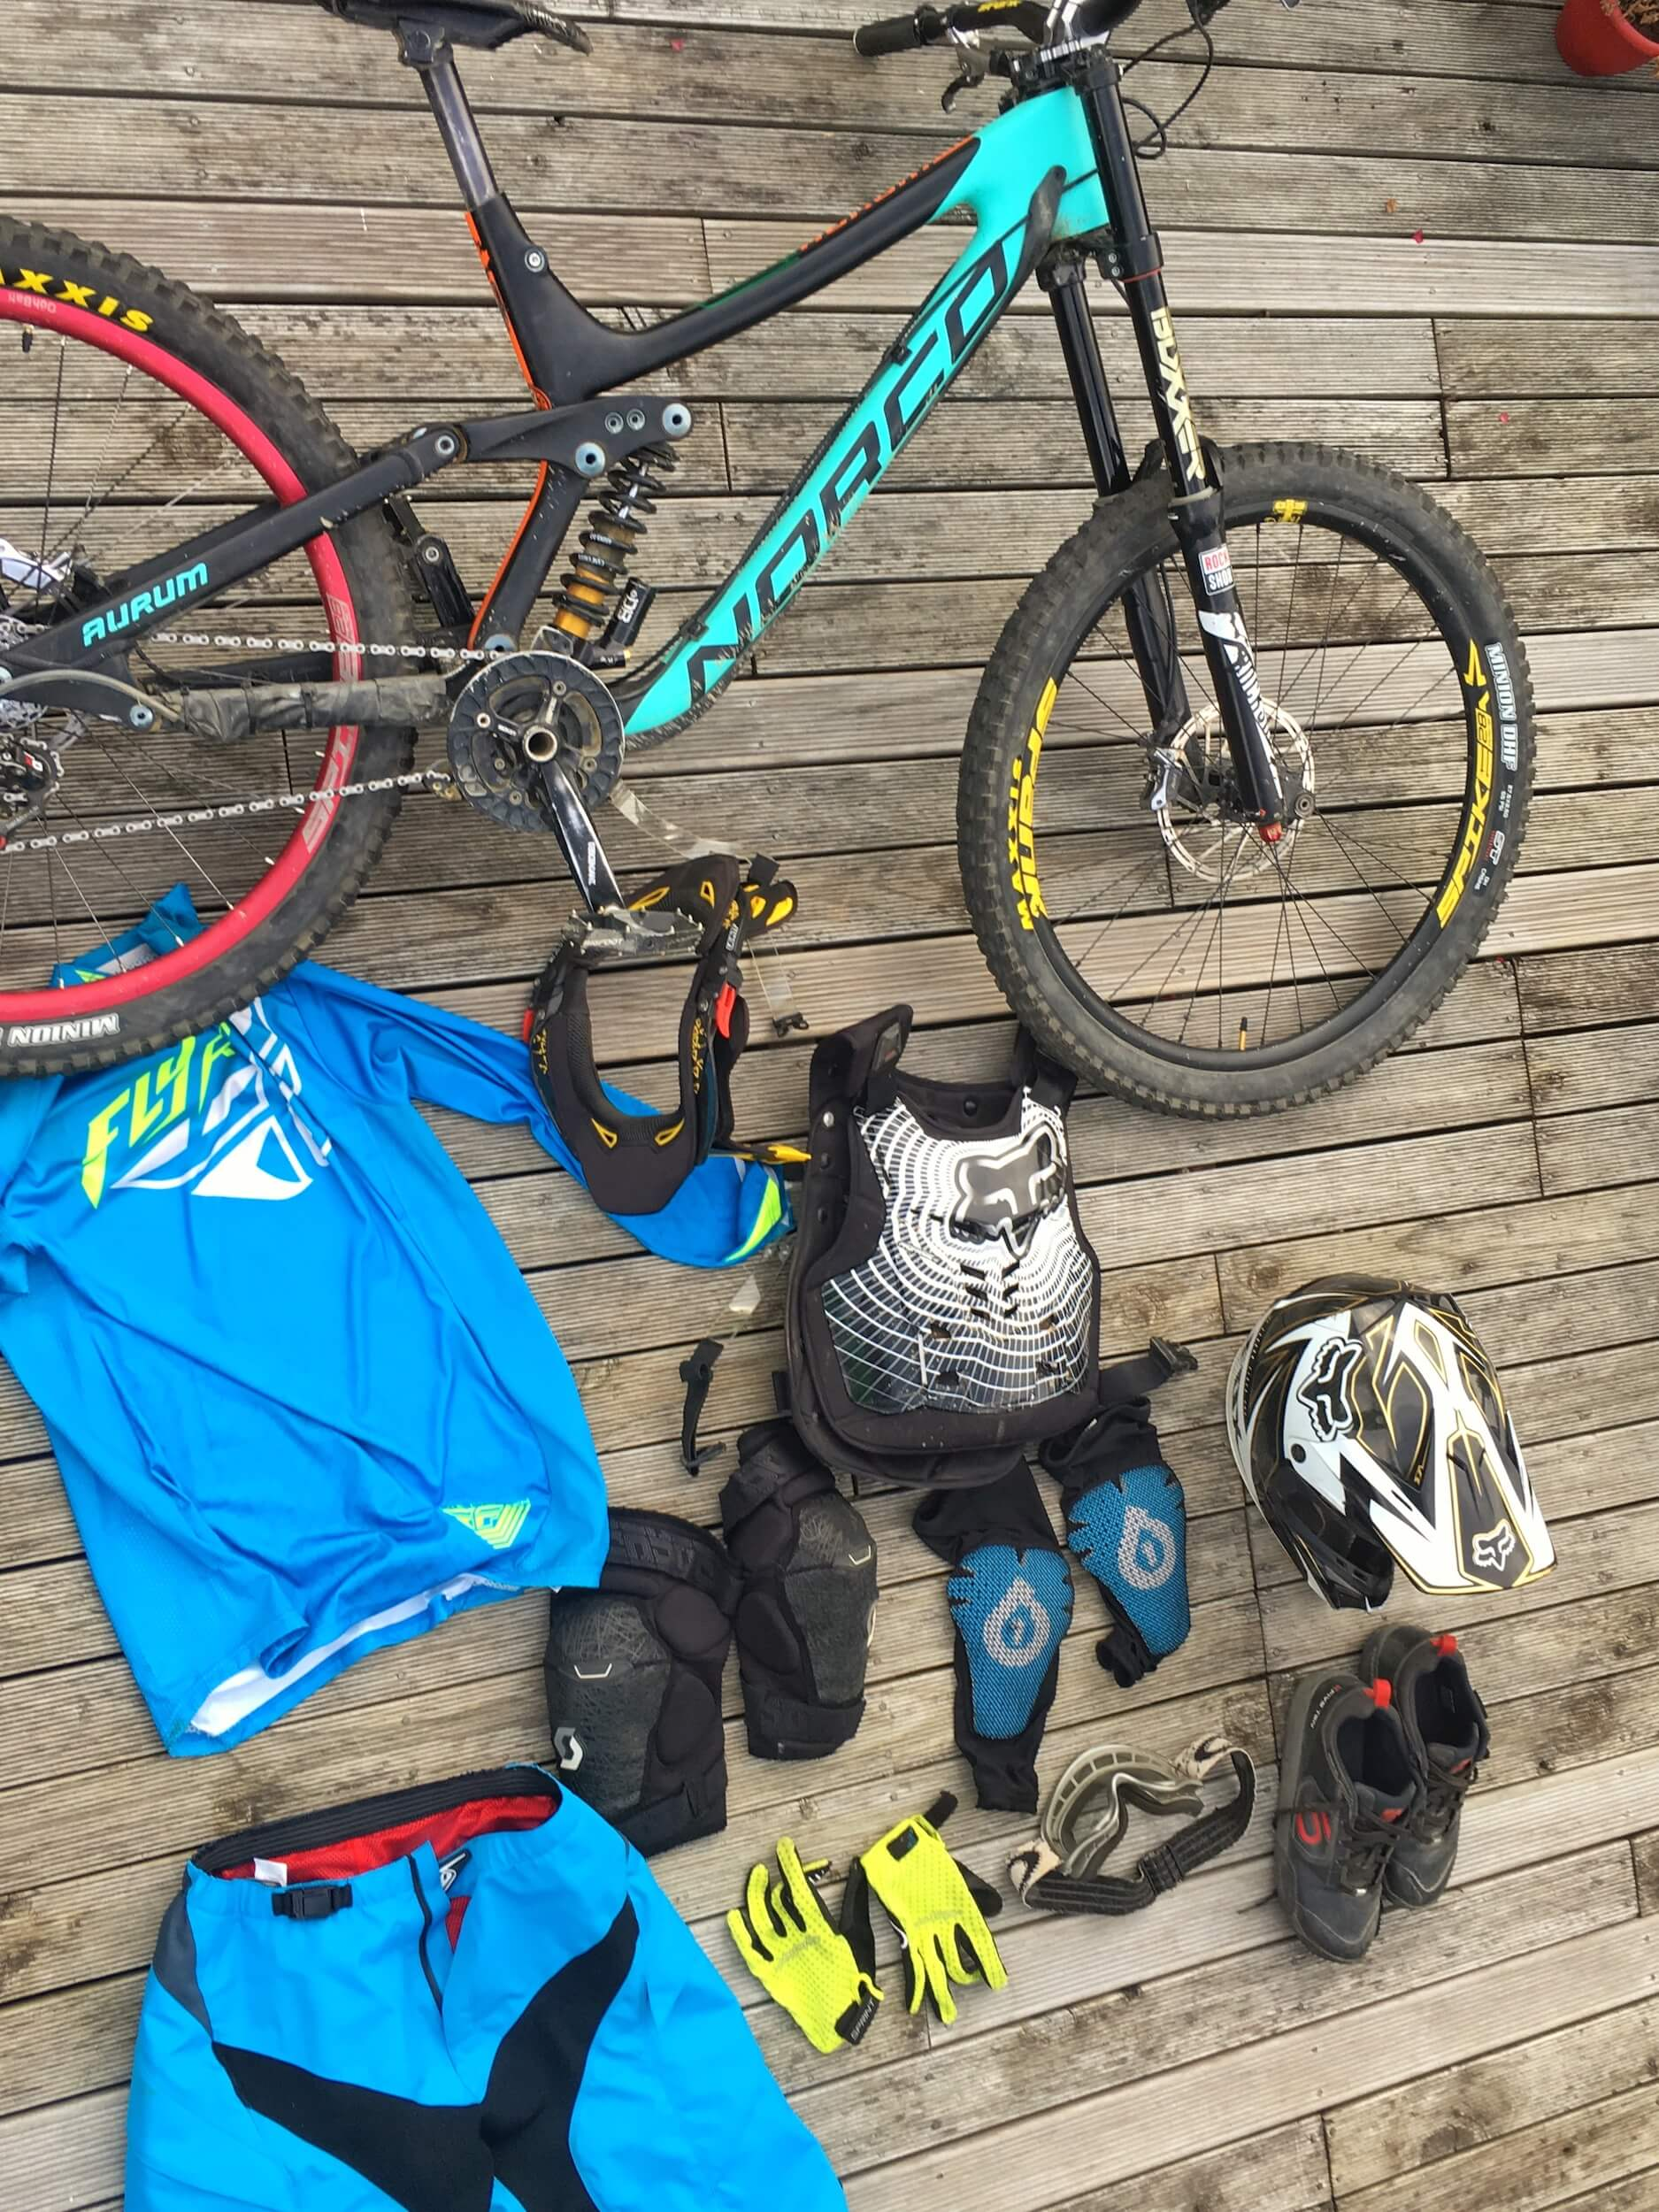 GEAR PREPARATION FOR THE DIRT STAR DH RACE